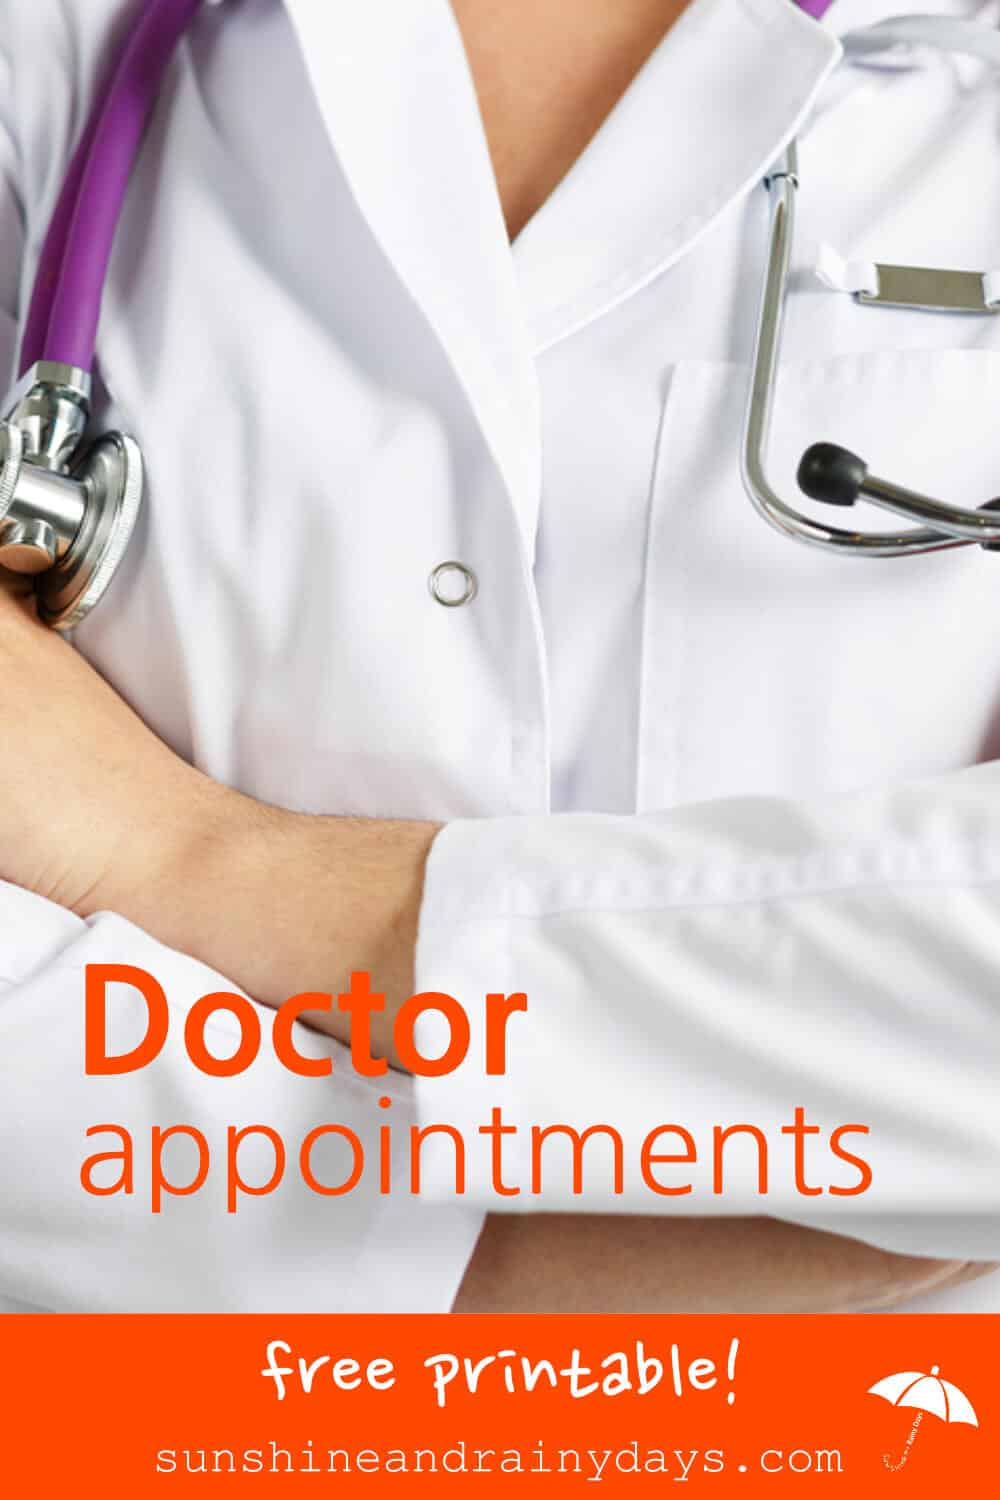 With the Doctor Appointments Free Printable, there is no need to call the doctor's office to see when your last appointment was. You have the information you need right in your very own Medical Binder!